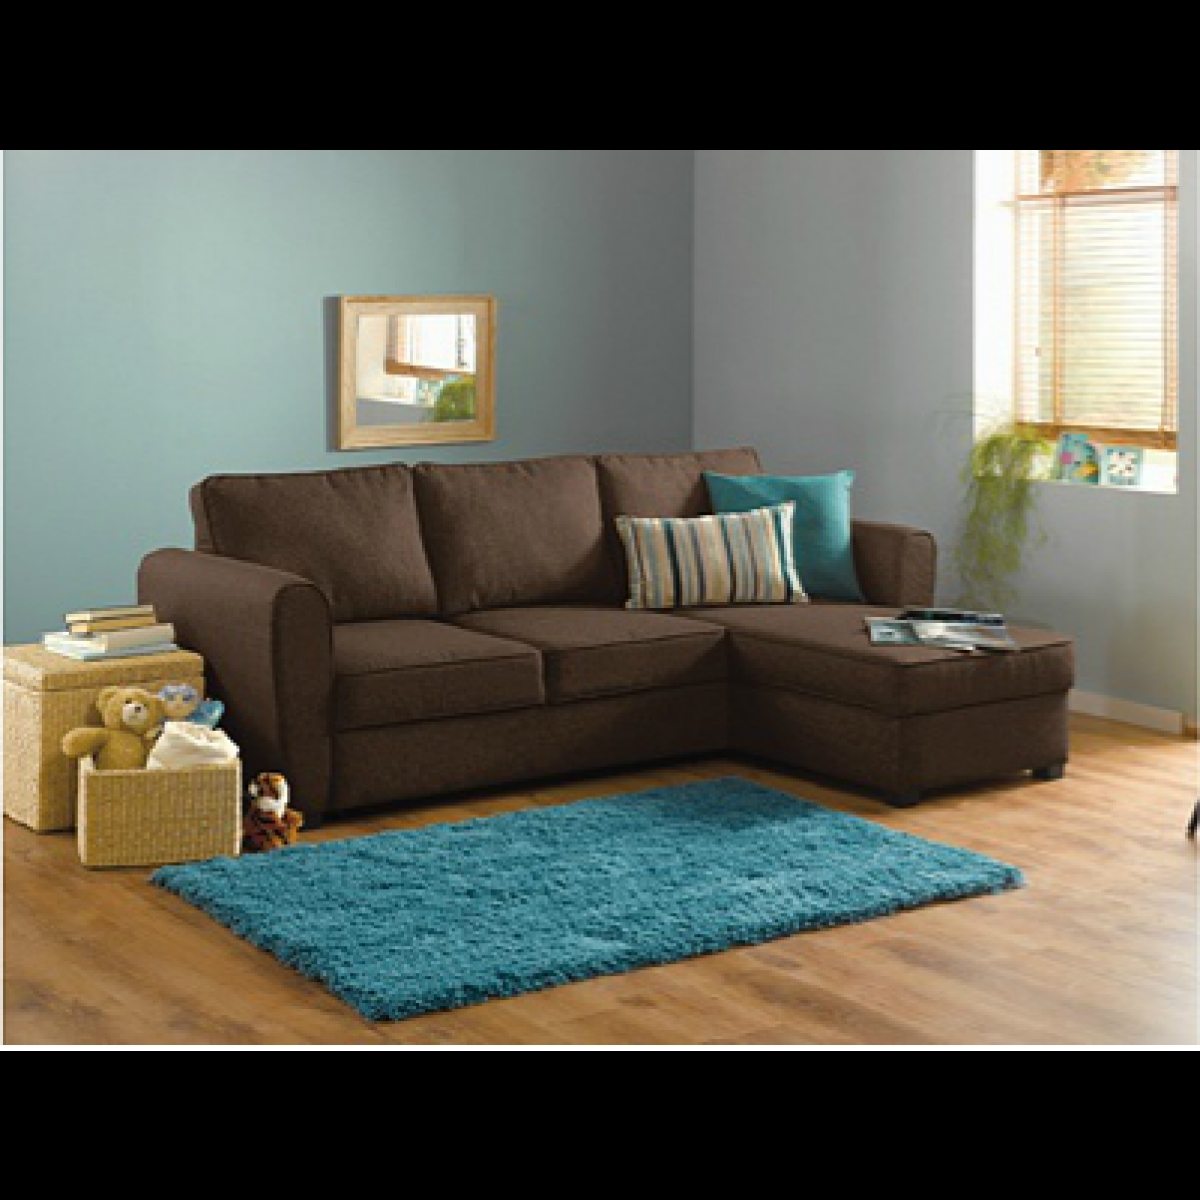 Home New Siena Fabric Corner Sofa Bed W Storage Chocolate Intended For Fabric Corner Sofa Bed (Image 5 of 15)